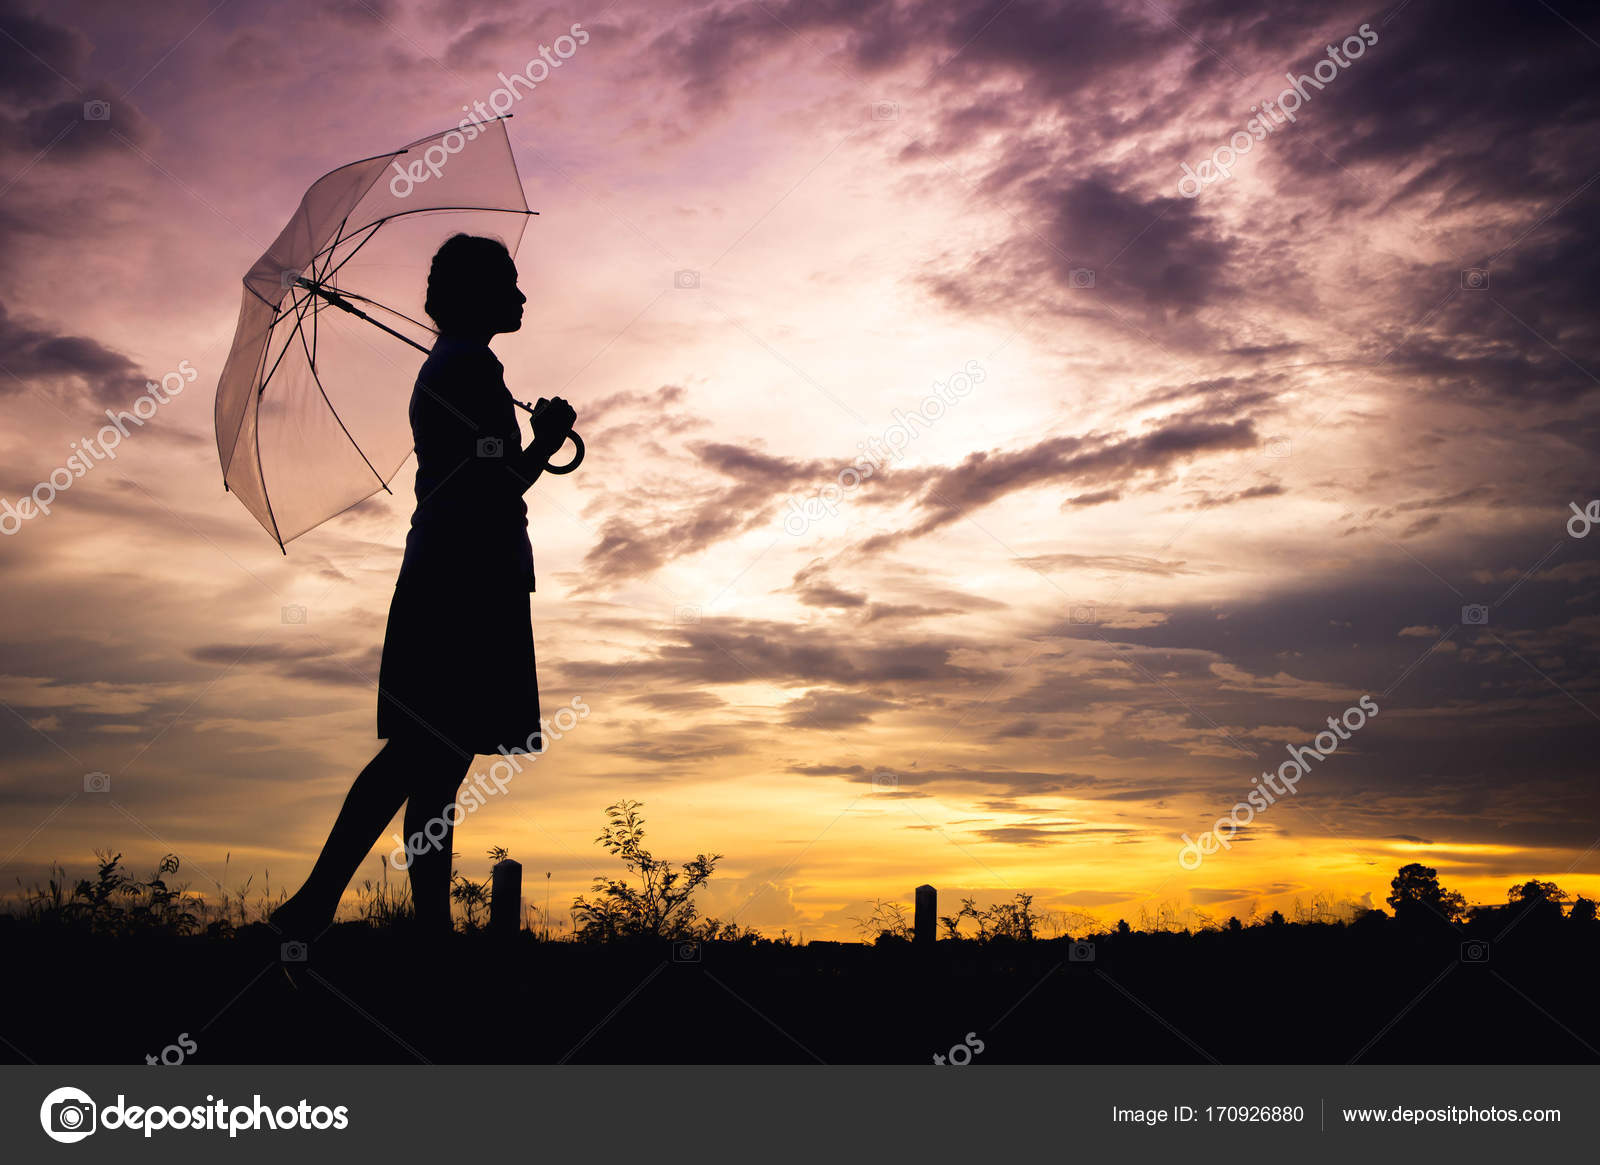 The sad girls silhouette style walking alone outdoor and umbrella inher hand with cloudy skies and